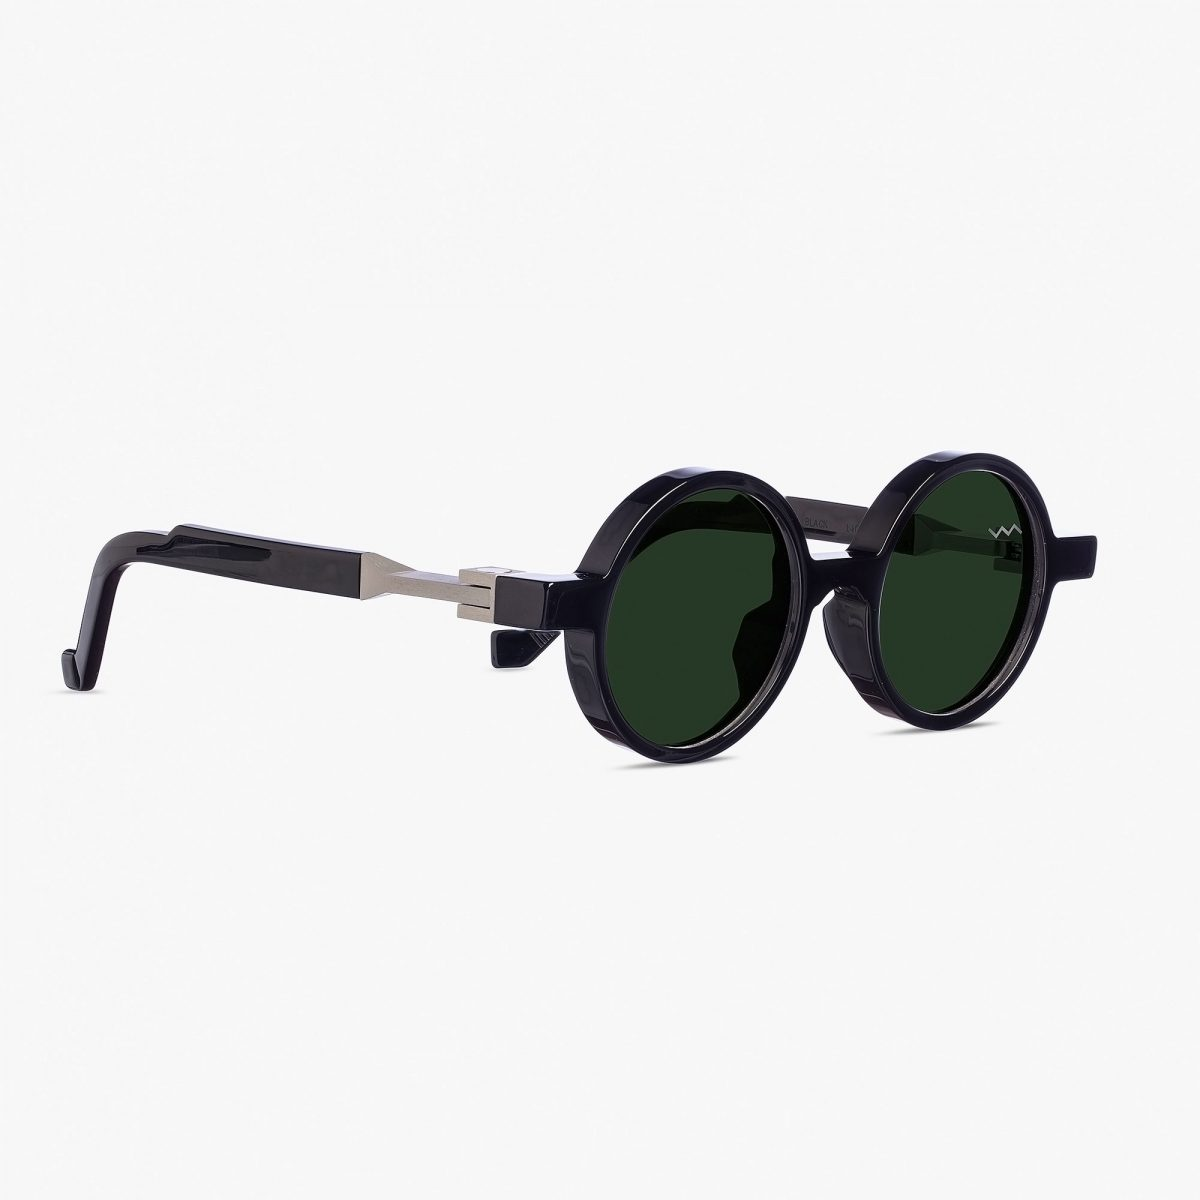 WL0006 BLACK SUNGLASS VAVA EYEWEAR ROUND SHAPED